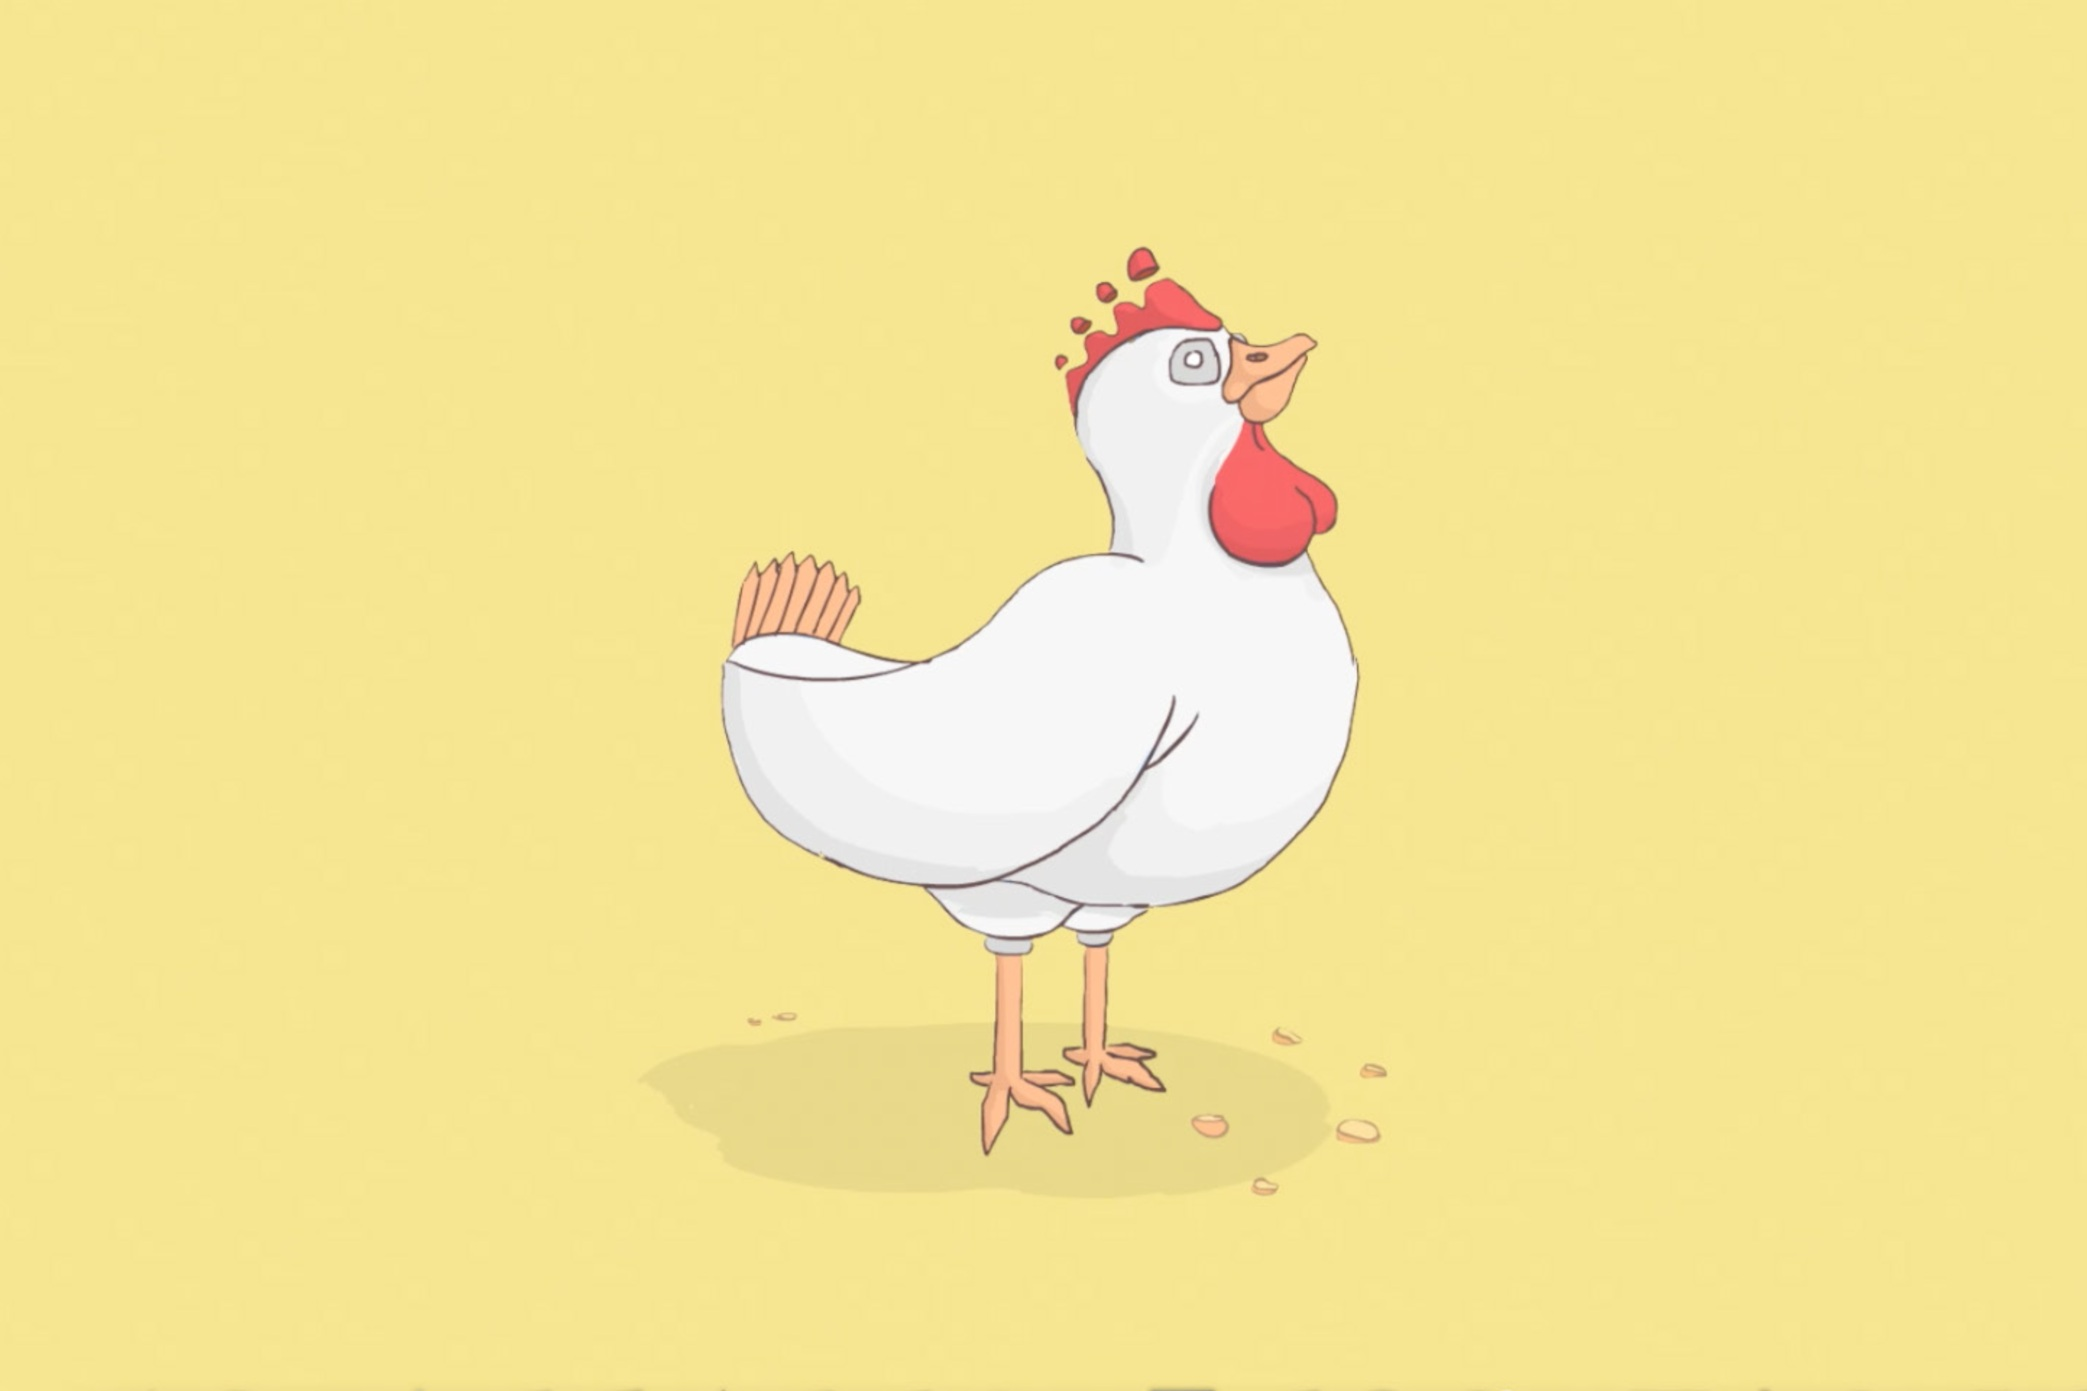 eggs chicken illustration 2D animation cel character design